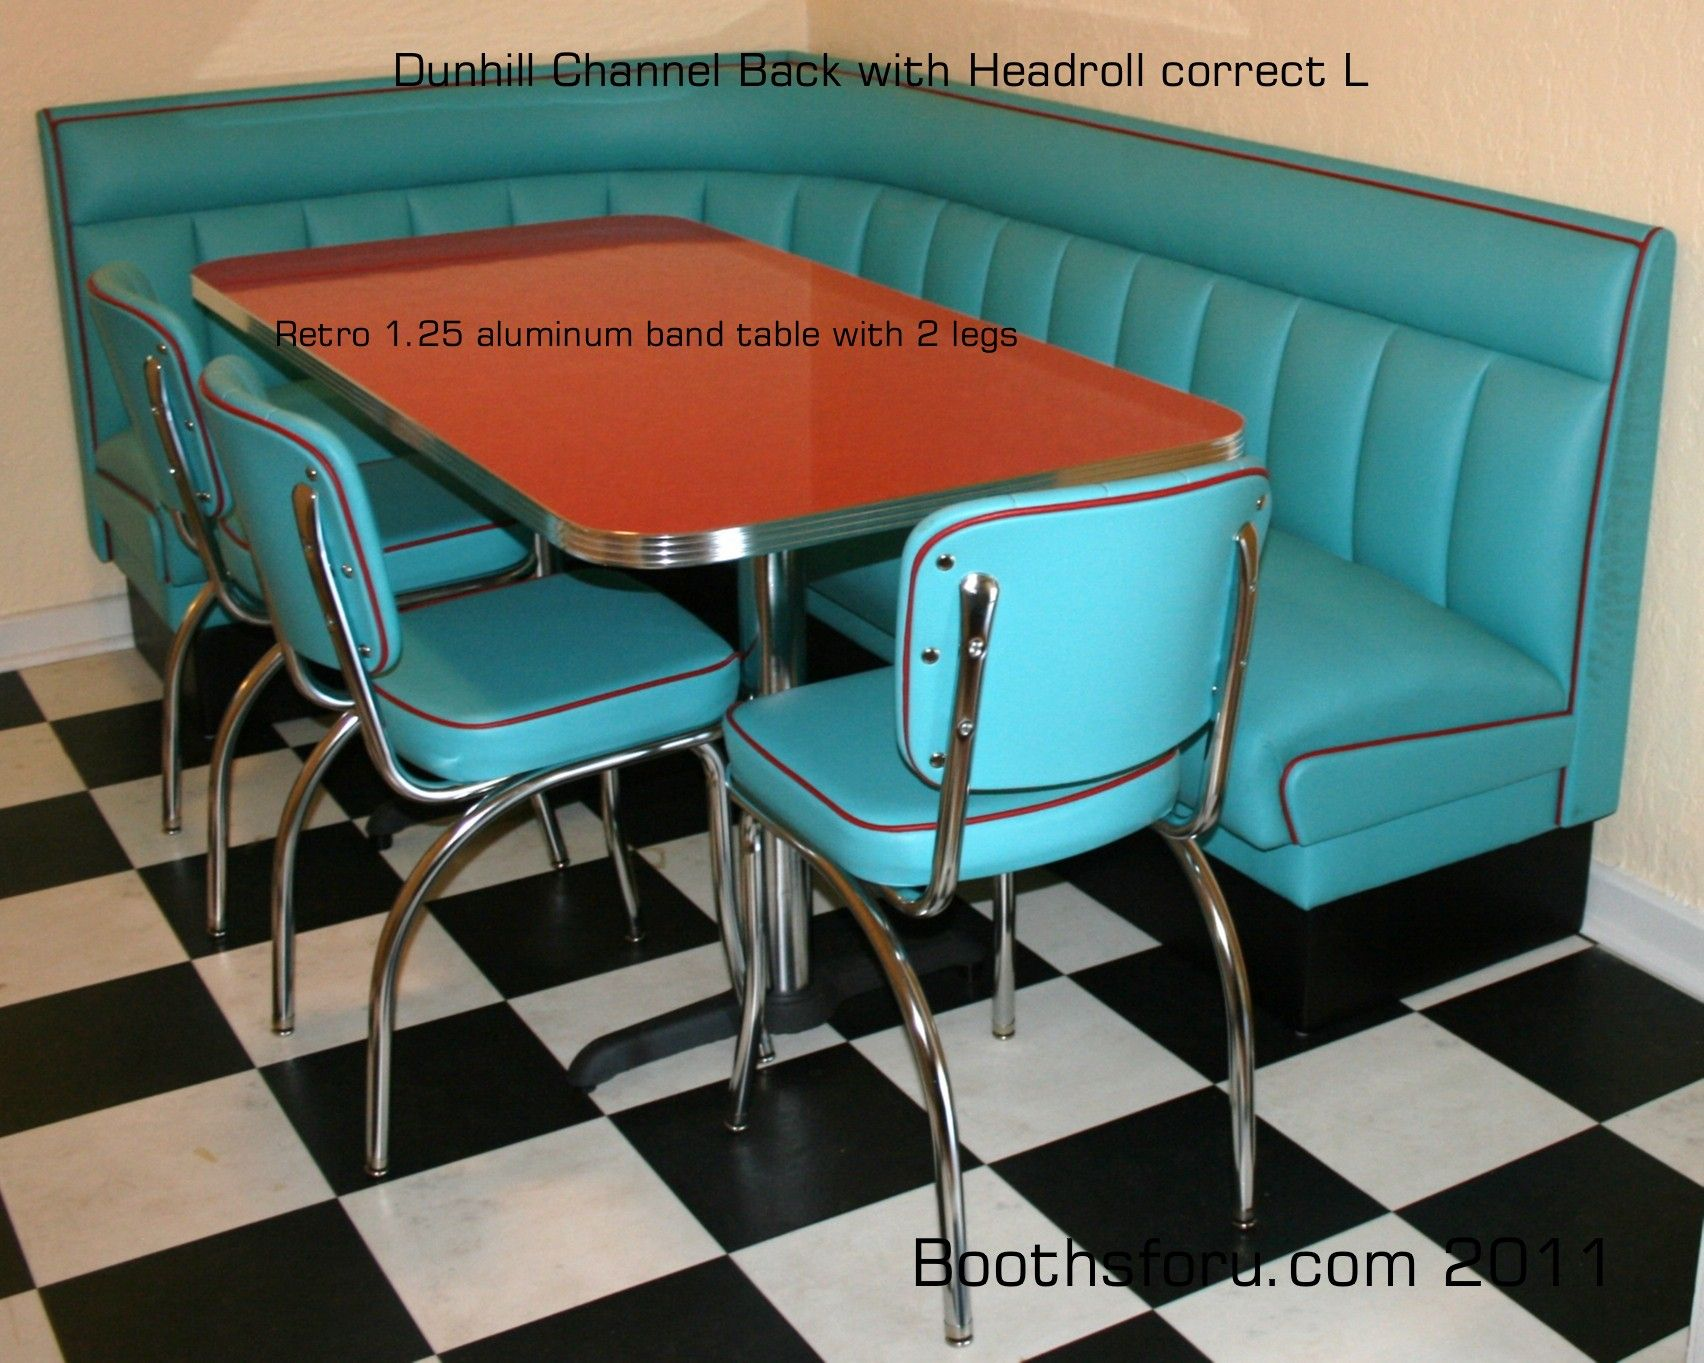 1000 ideas about kitchen booths on pinterest nooks banquettes and - Retro Diner Booths Booths And Banquettes For Residence Bars Restaurants Cafe S Diner